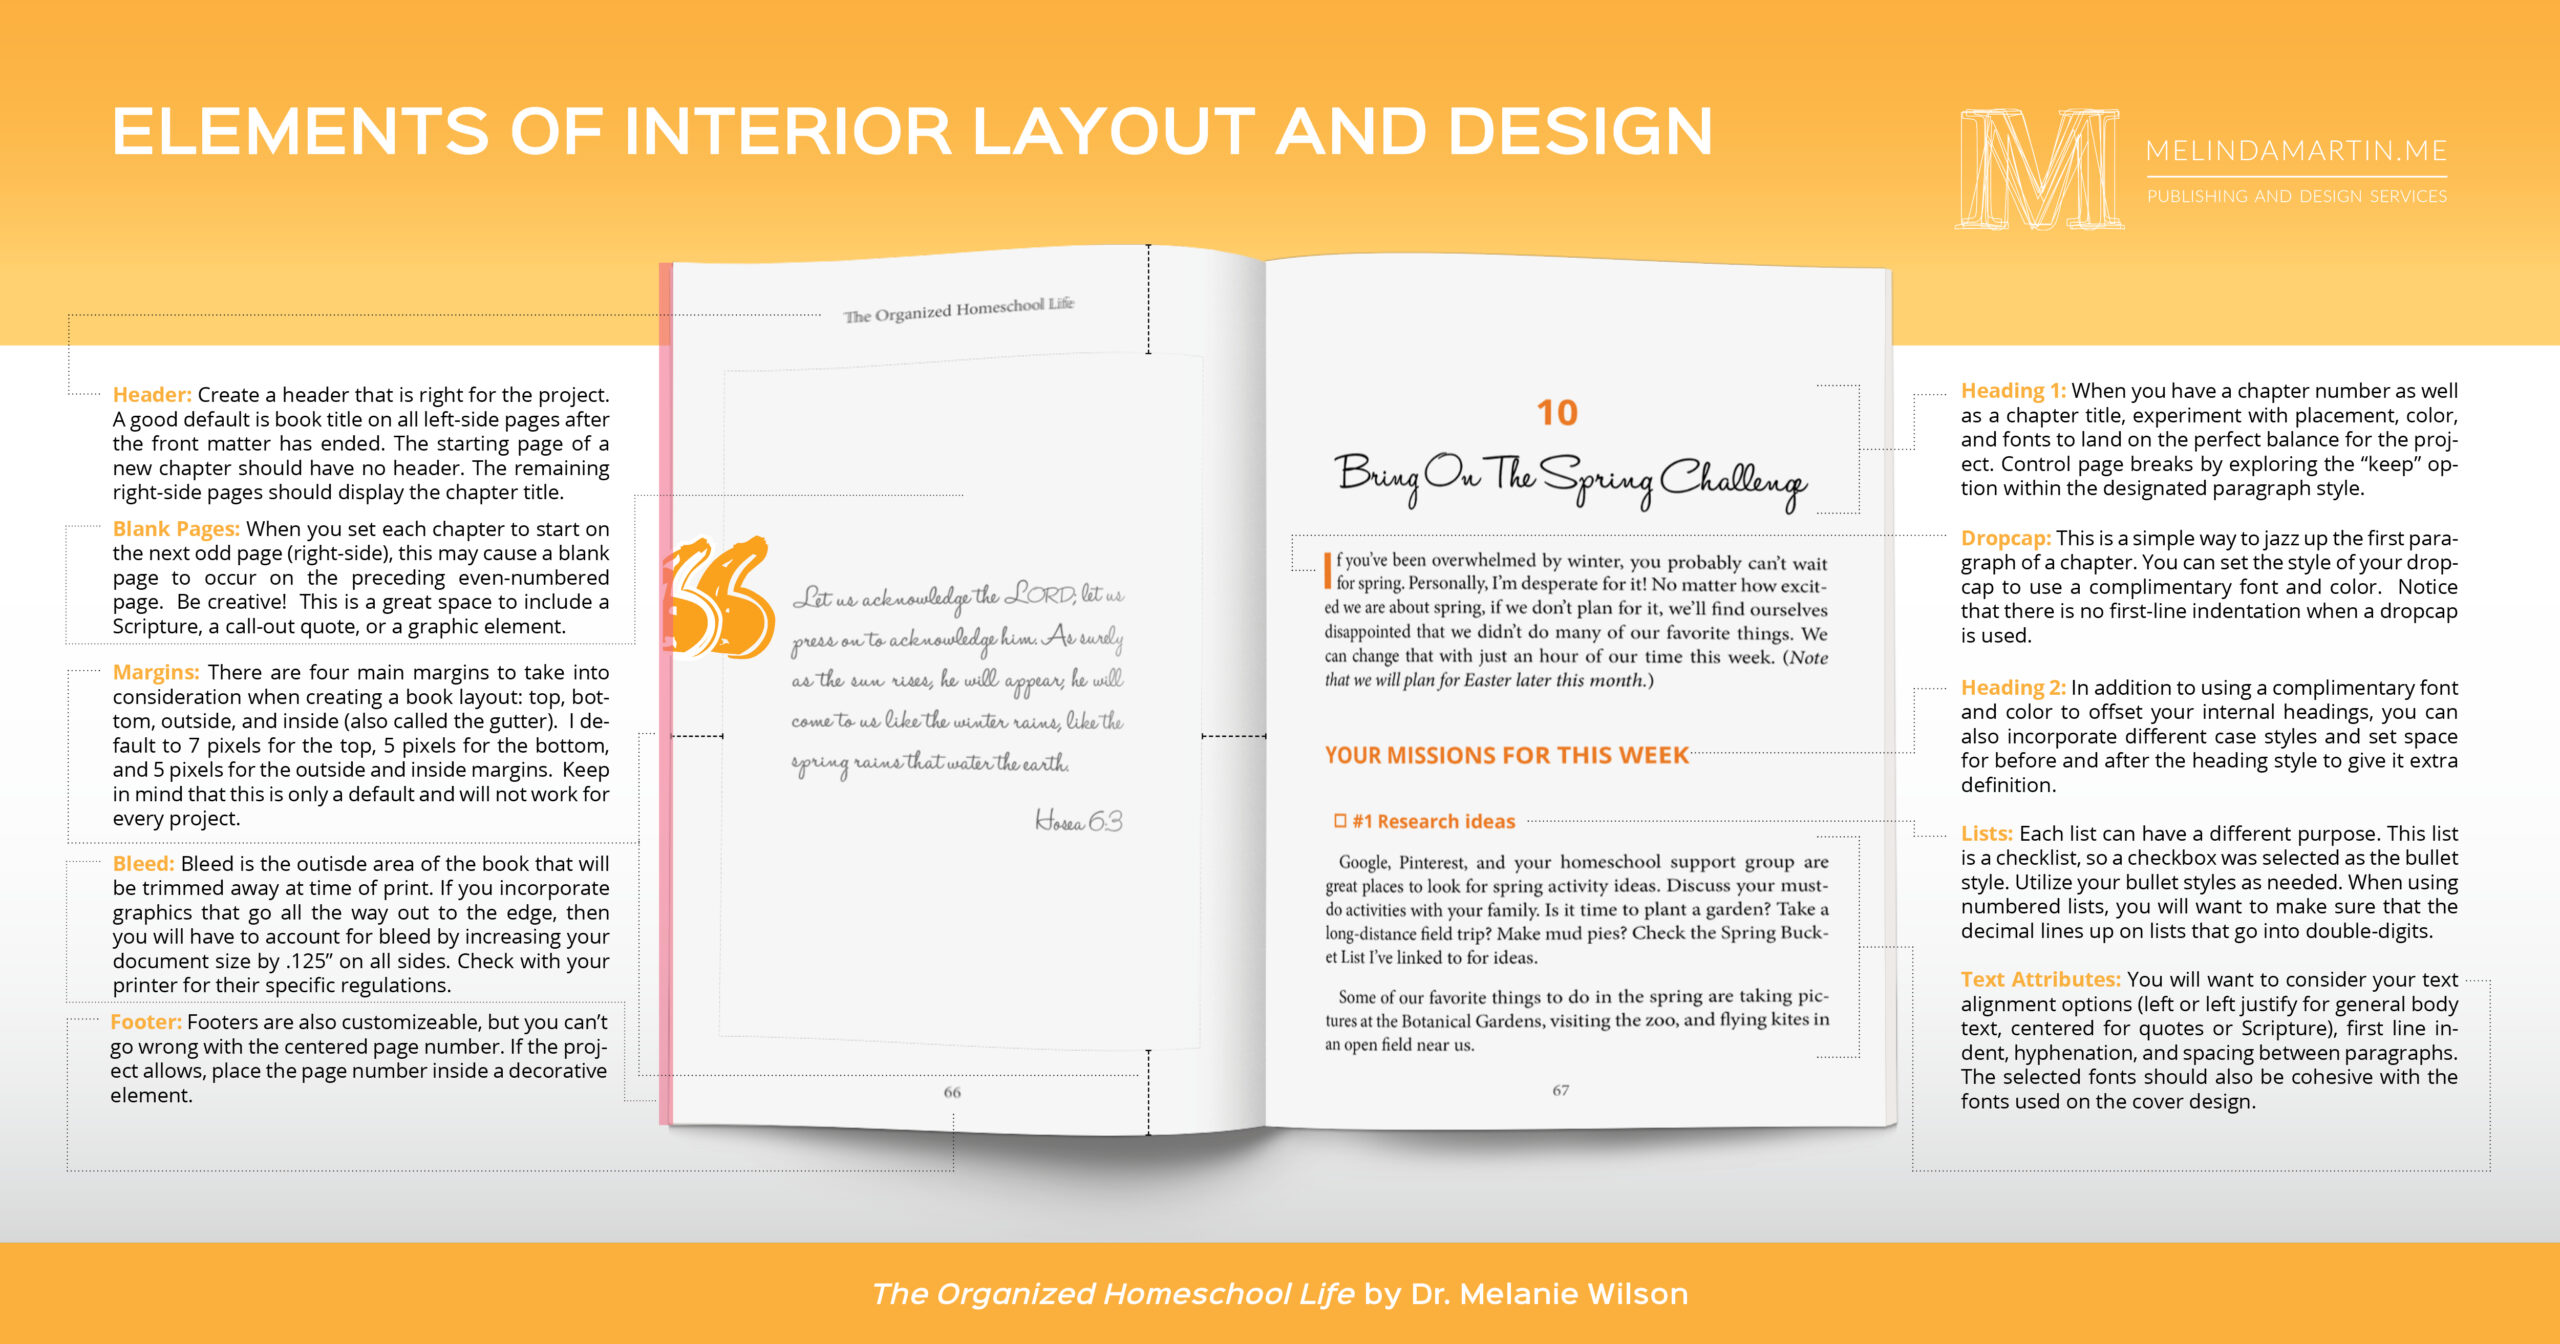 Elements of interior design and layout infographic for Basic elements of interior design